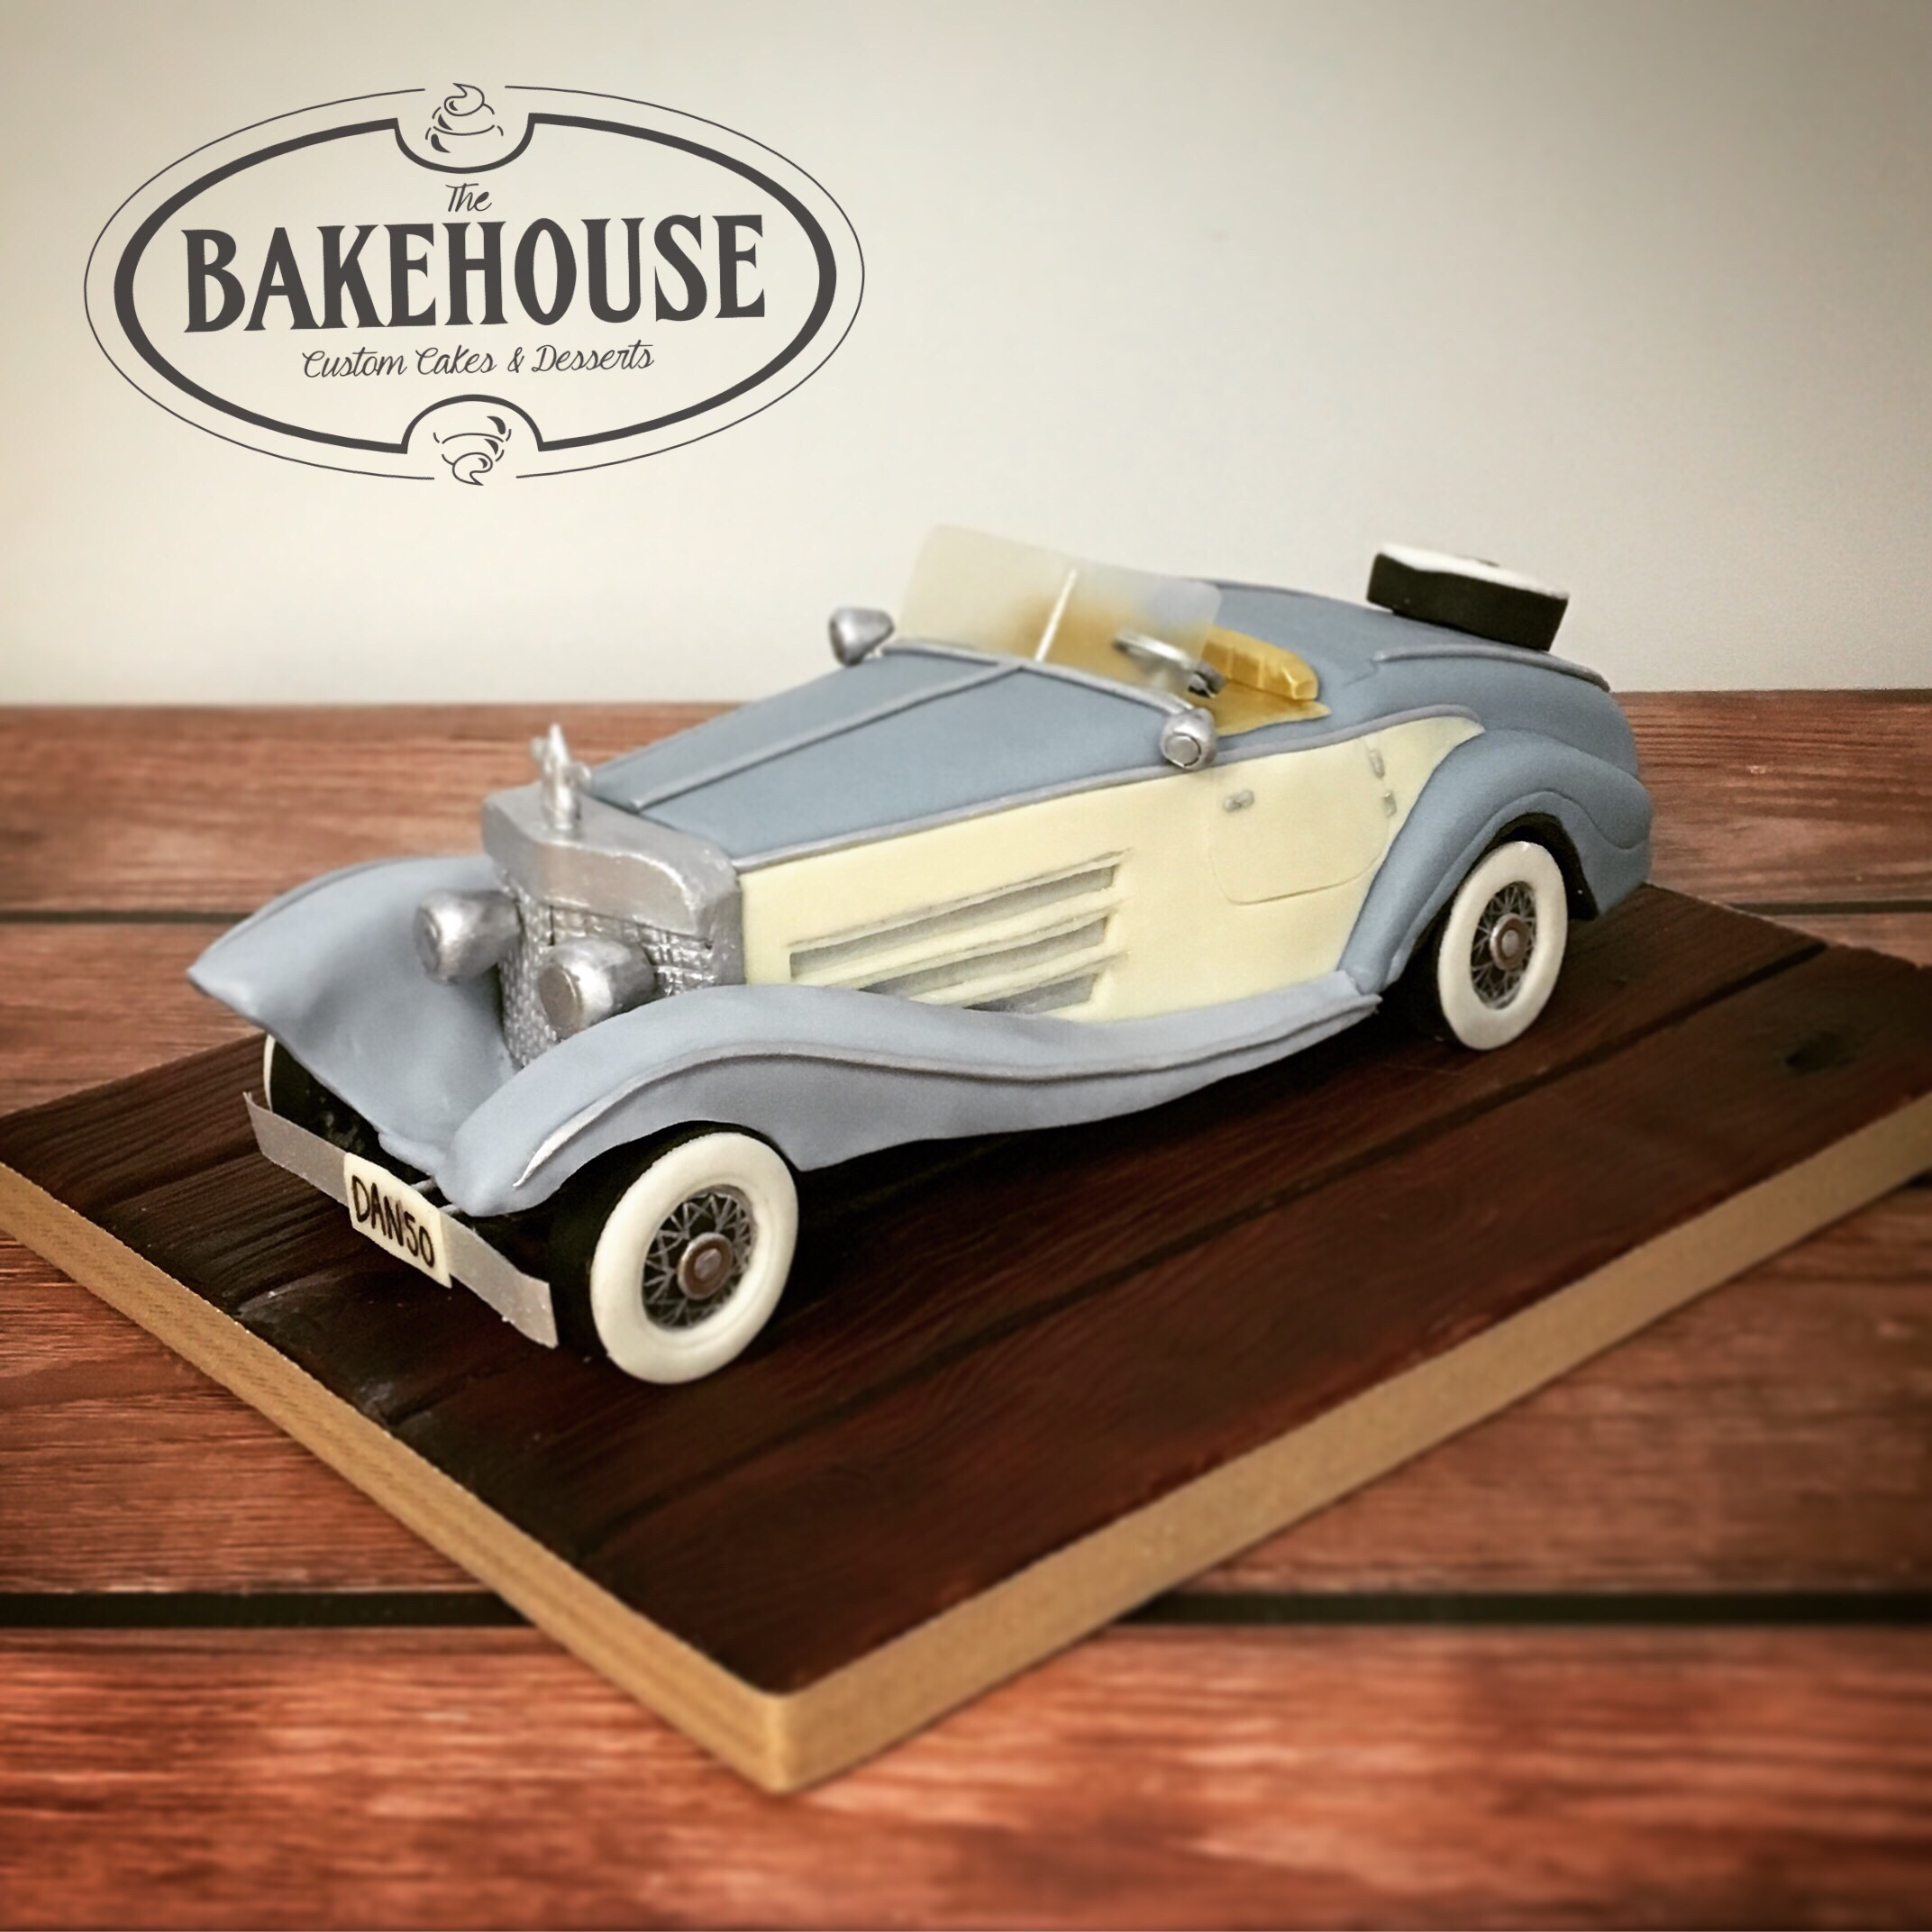 Rolls Royce 1920s Car Cake Creations By The Bakehouse